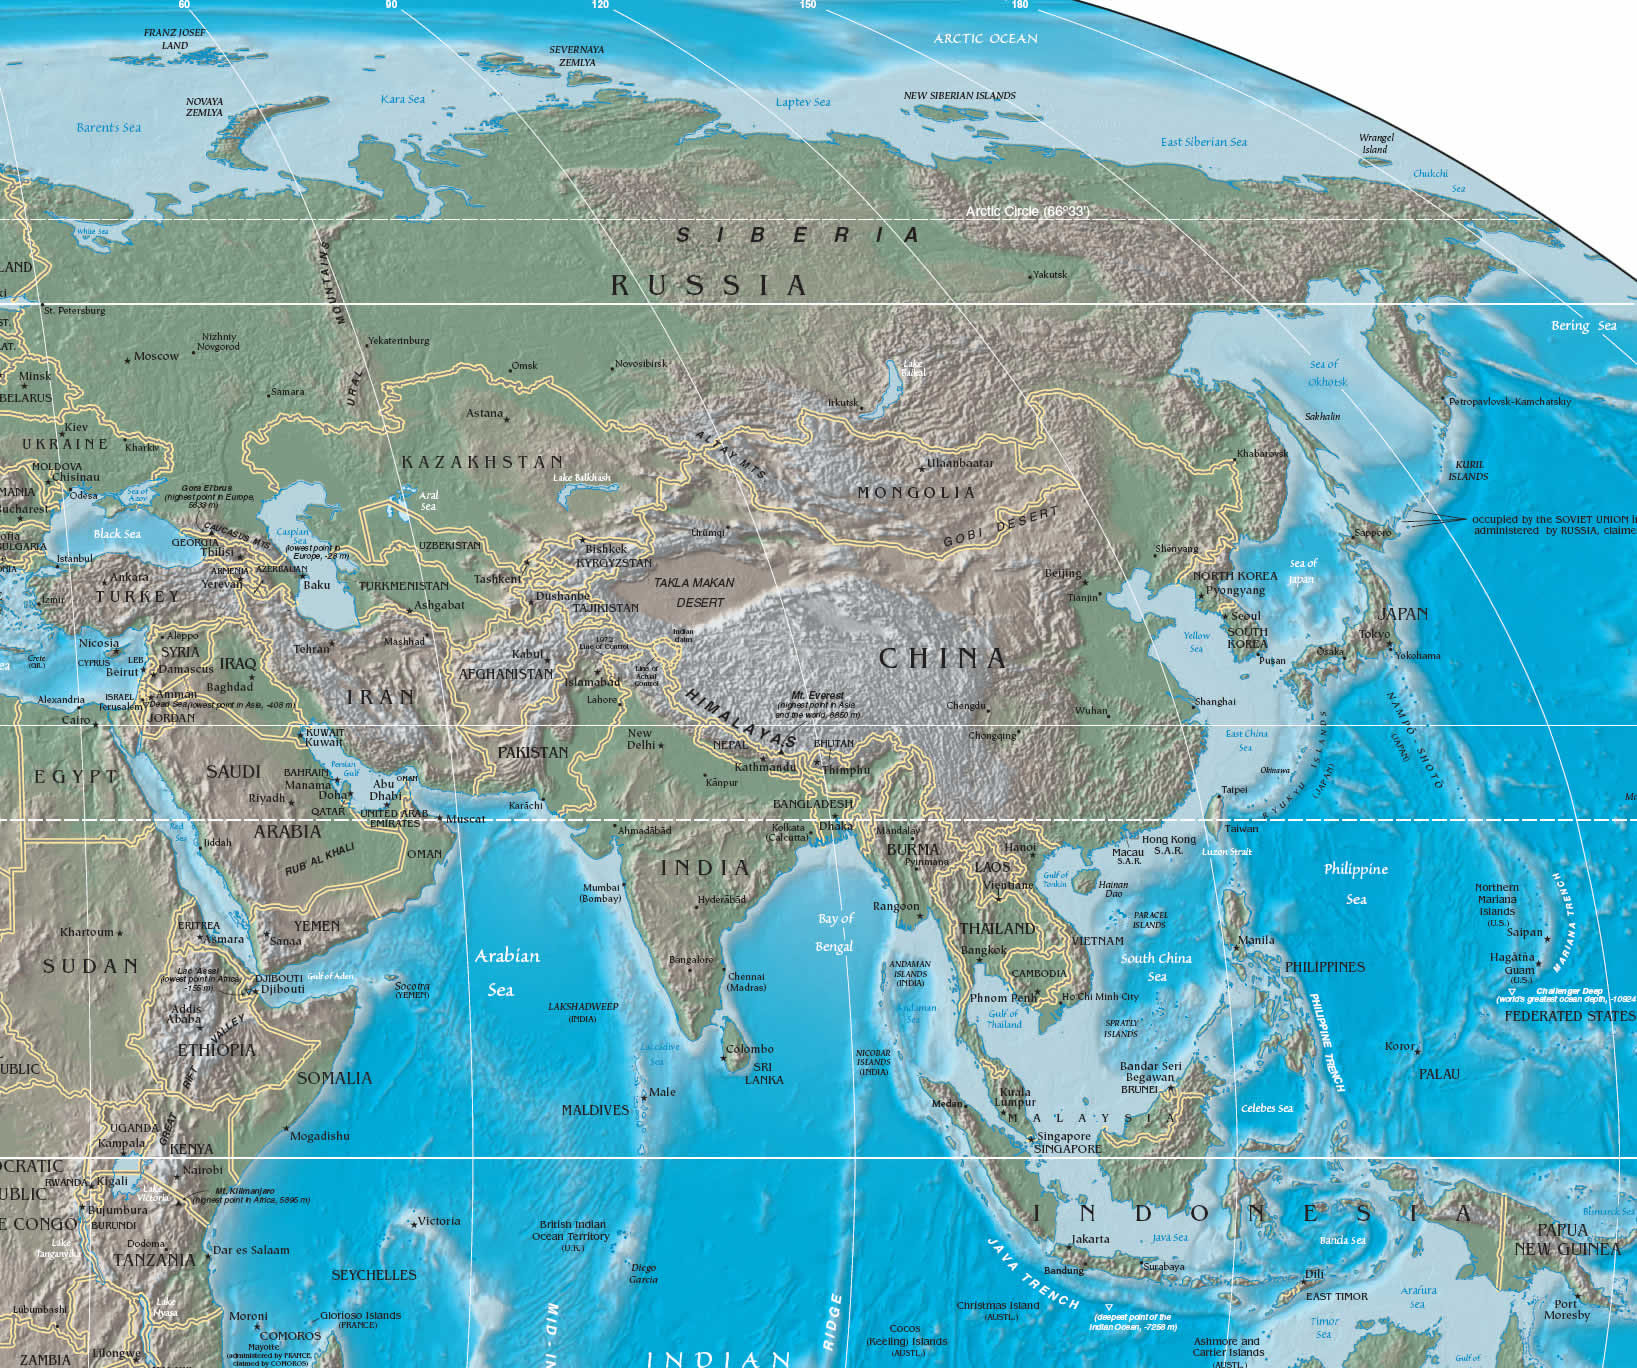 Large Map Of Asia.Maps Of Asia And Asia Countries Political Maps Administrative And